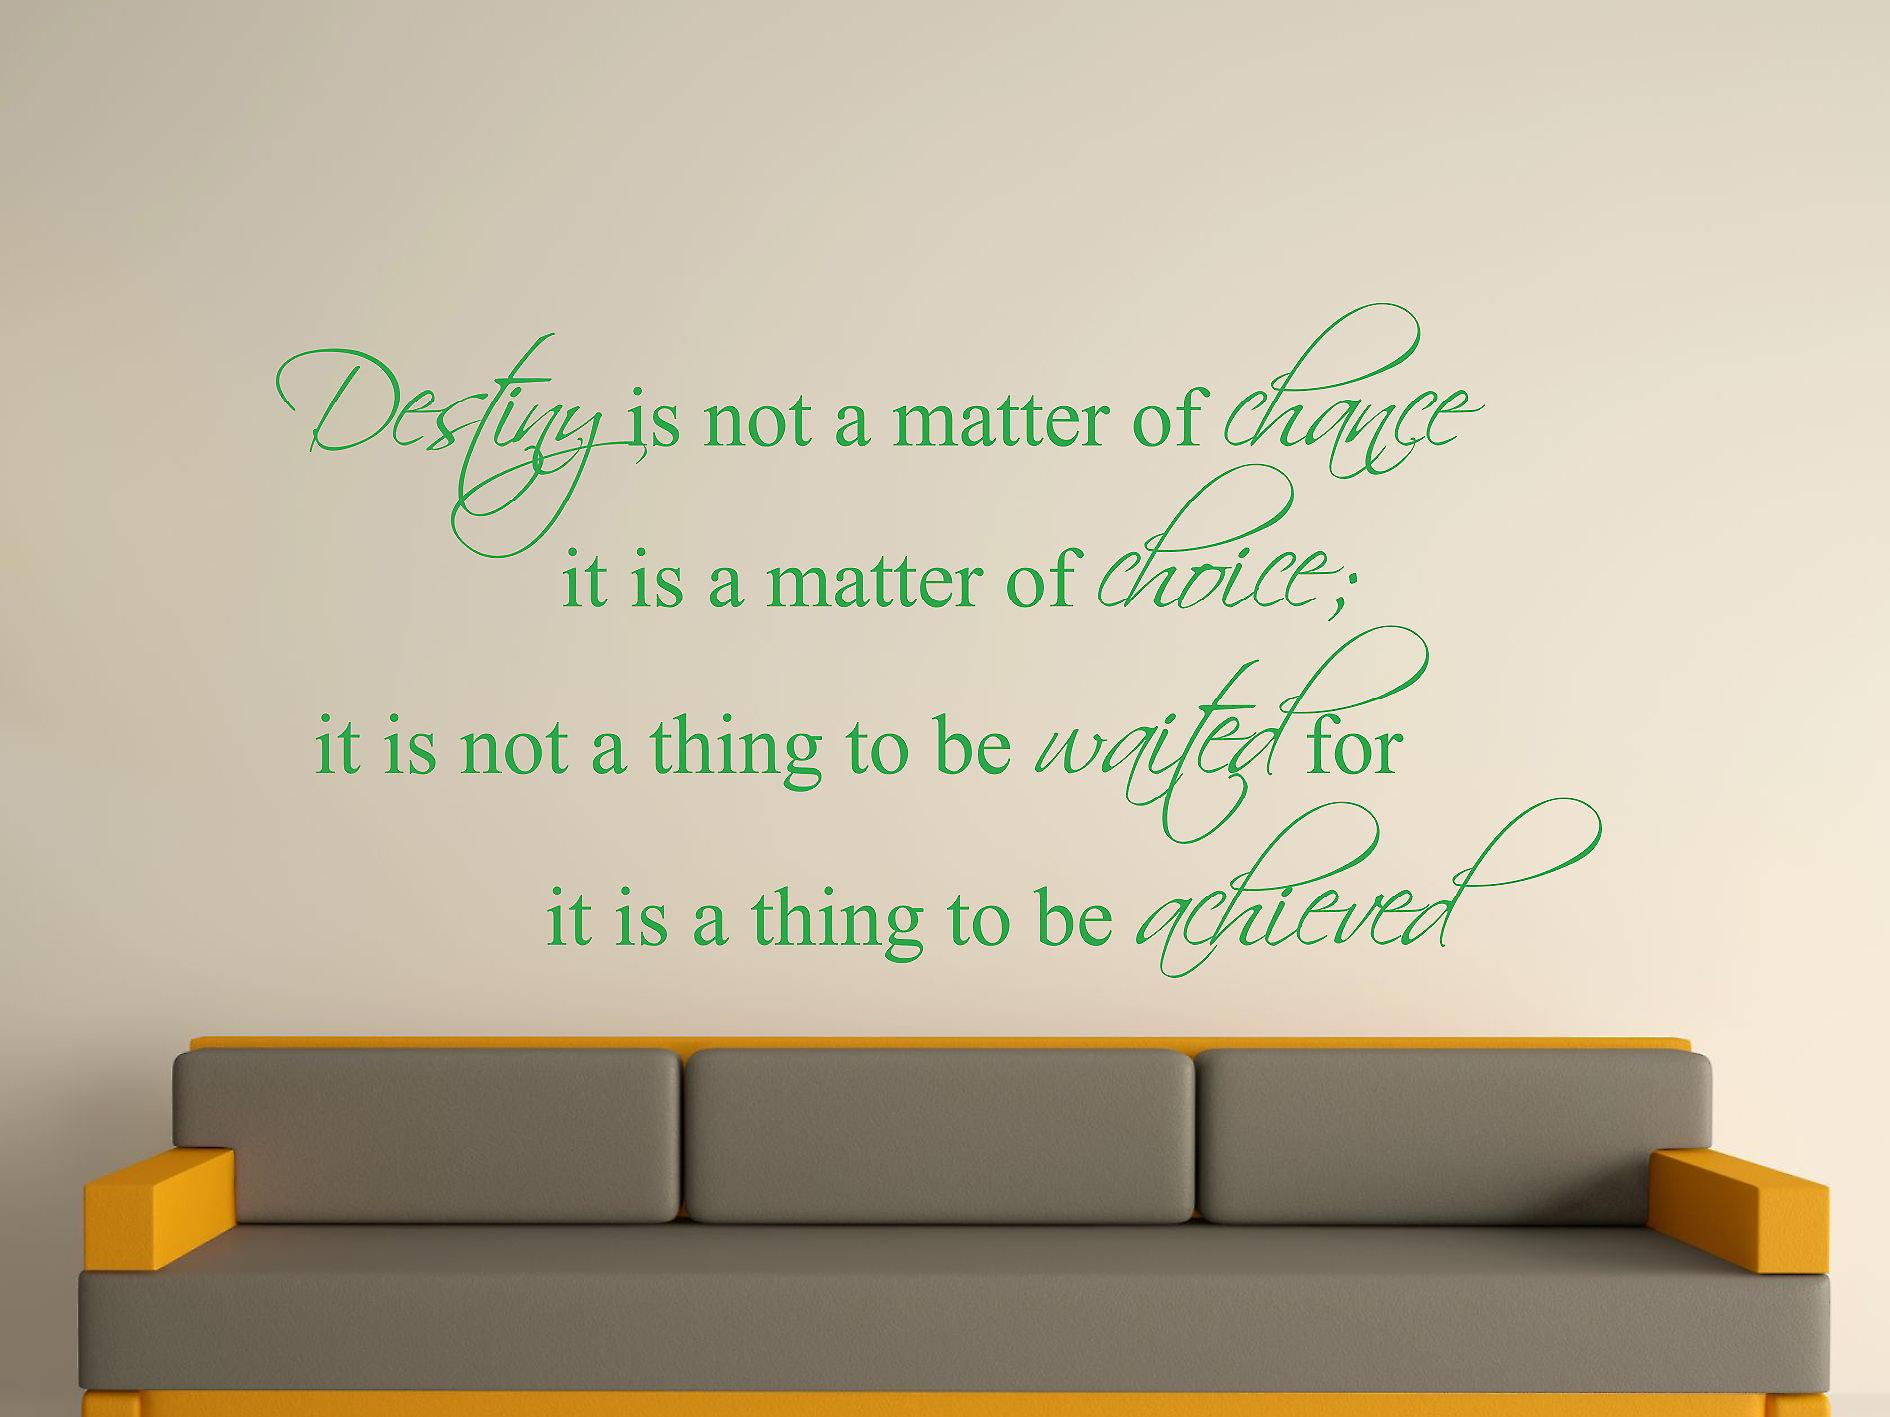 Destiny Is Not A Matter of Chance Wall Art Sticker -  Green